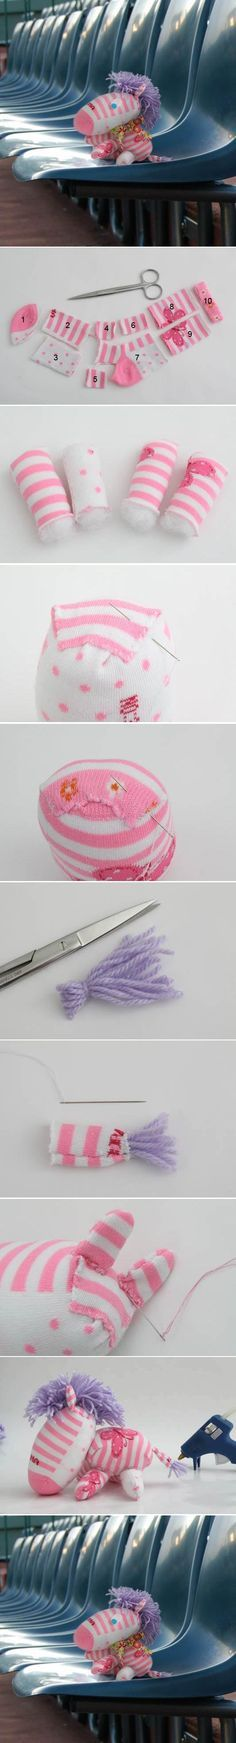 DIY Little Sock Zebra DIY Projects